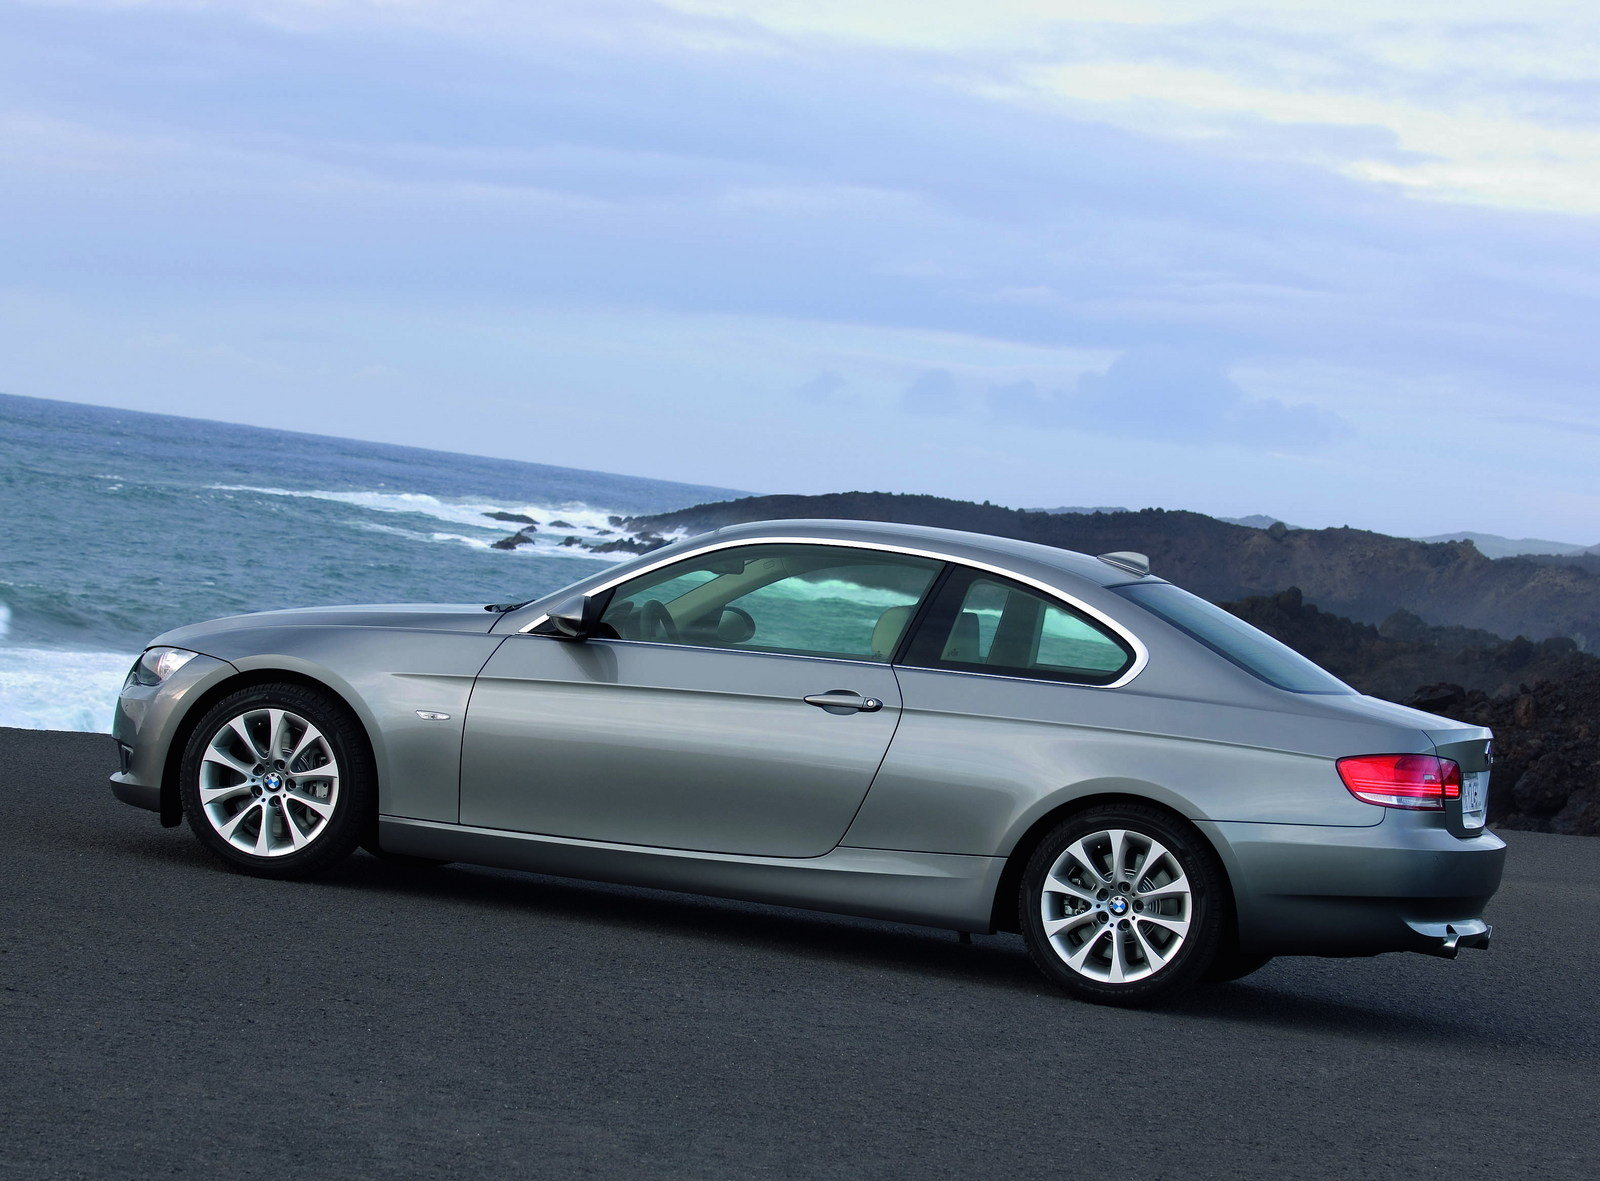 2007 bmw 3 series coupe e90 picture 54229 car review top speed. Black Bedroom Furniture Sets. Home Design Ideas